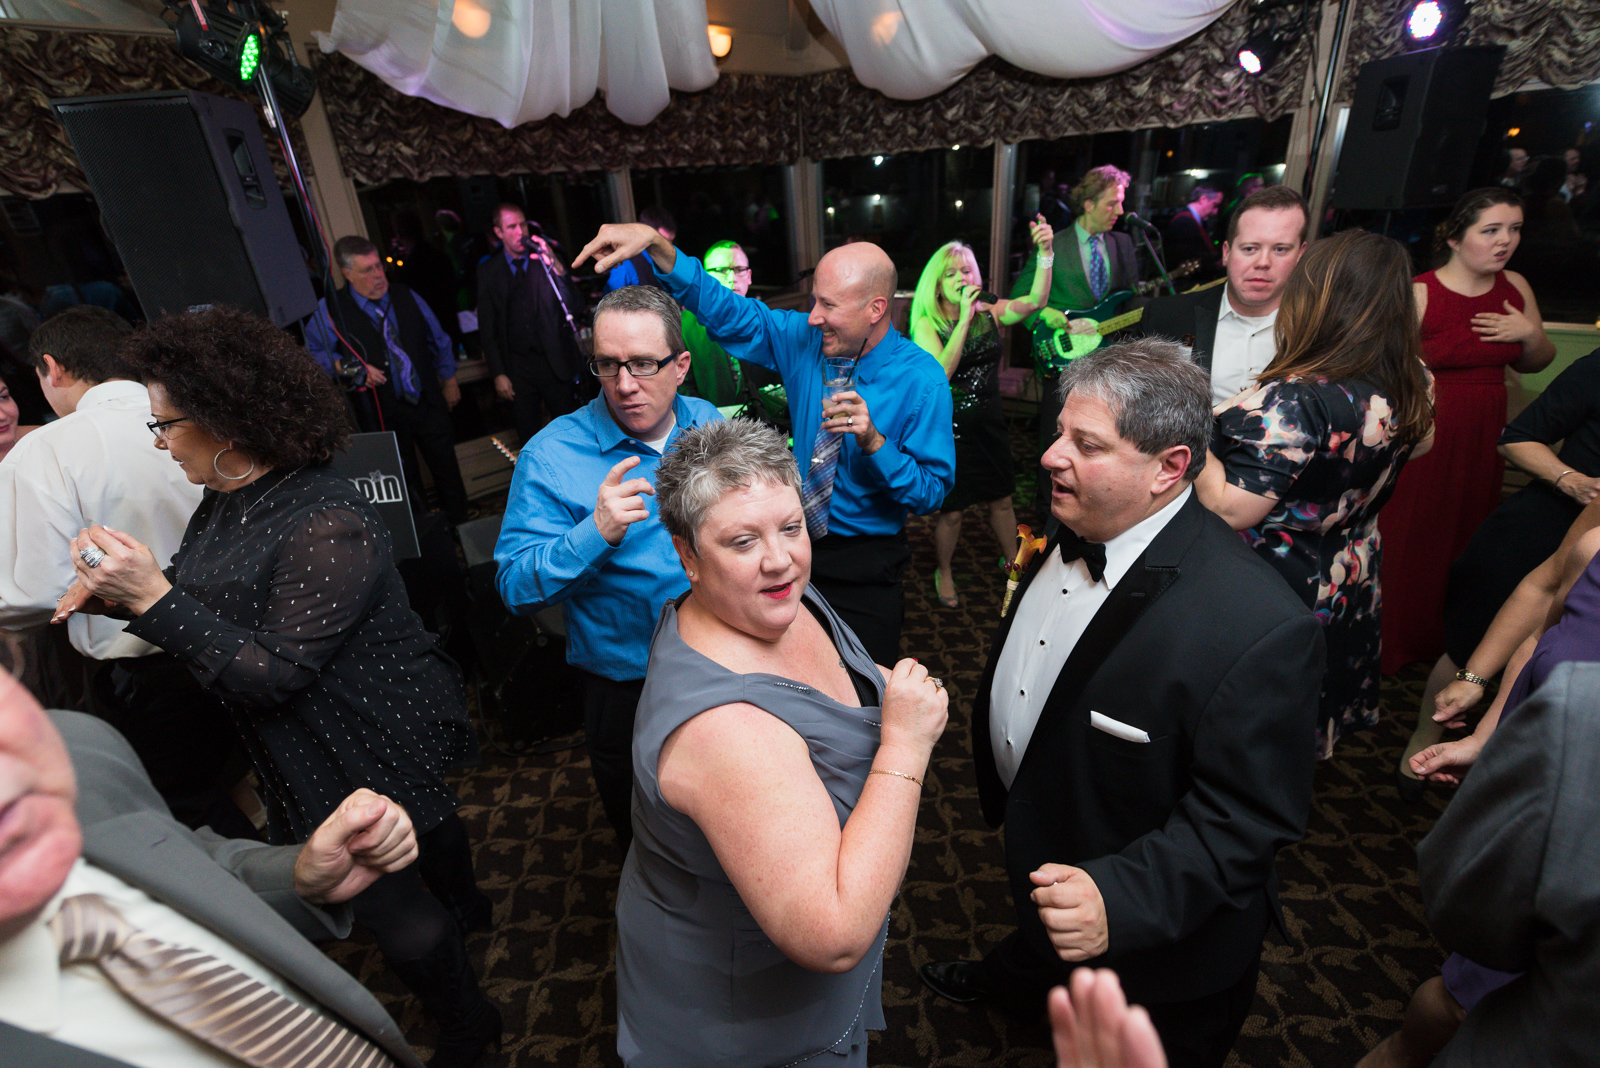 Scranton-clarks-summit-wedding-glen-oaks-contry-club-wedding-photographer-steven-serge-90.jpg